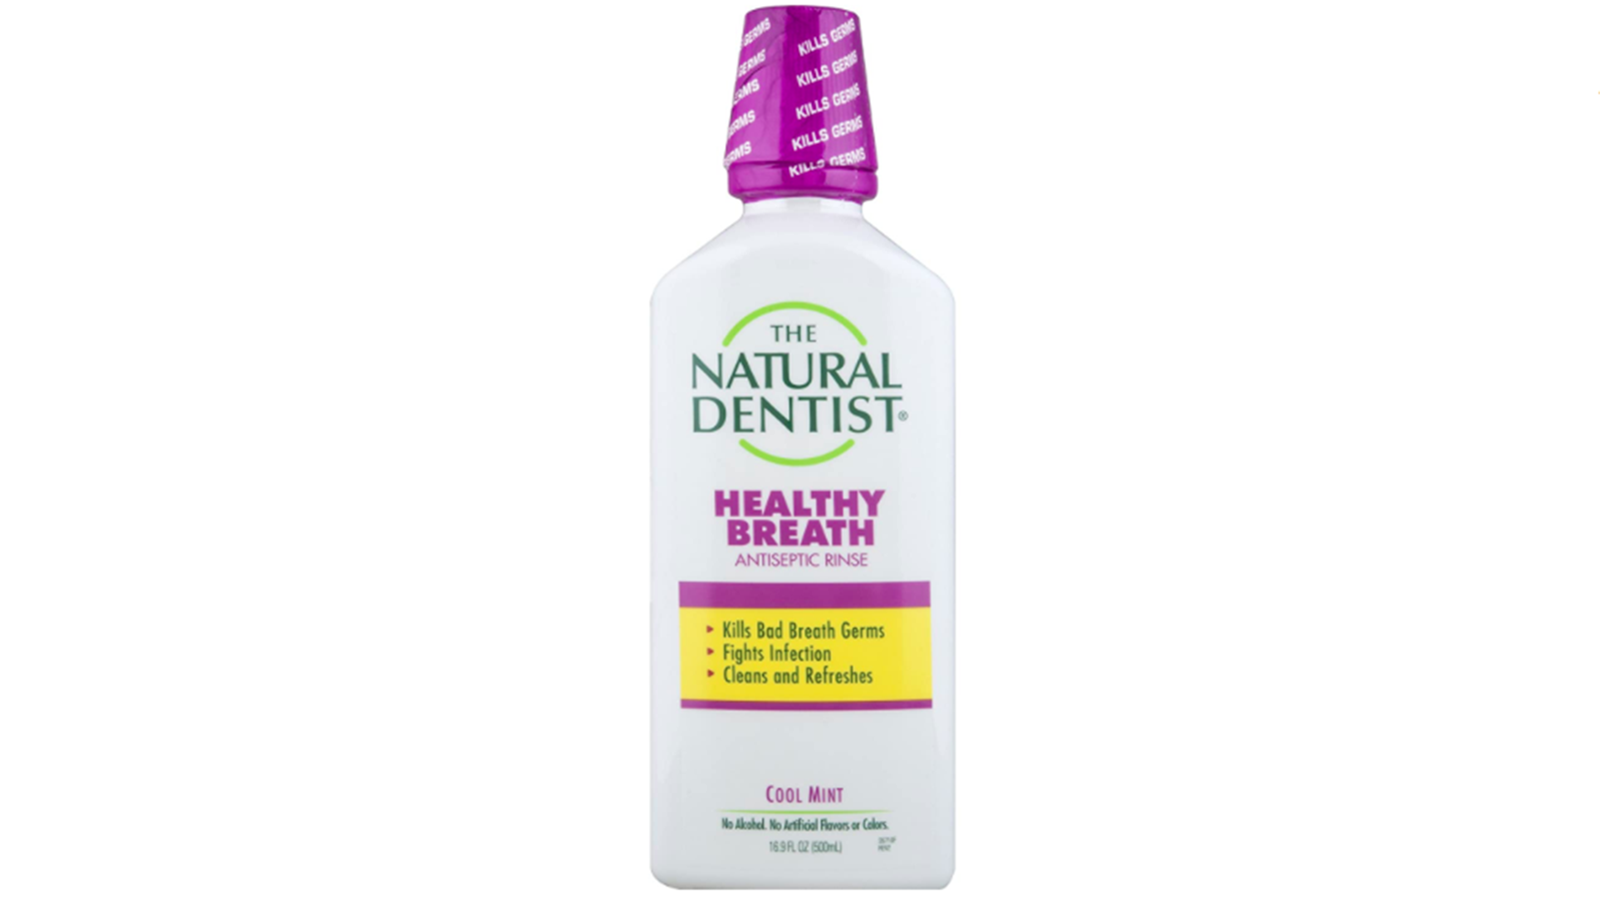 Product shot of a bottle of Natural Dentist Healthy Fresh mouthwash over a white background